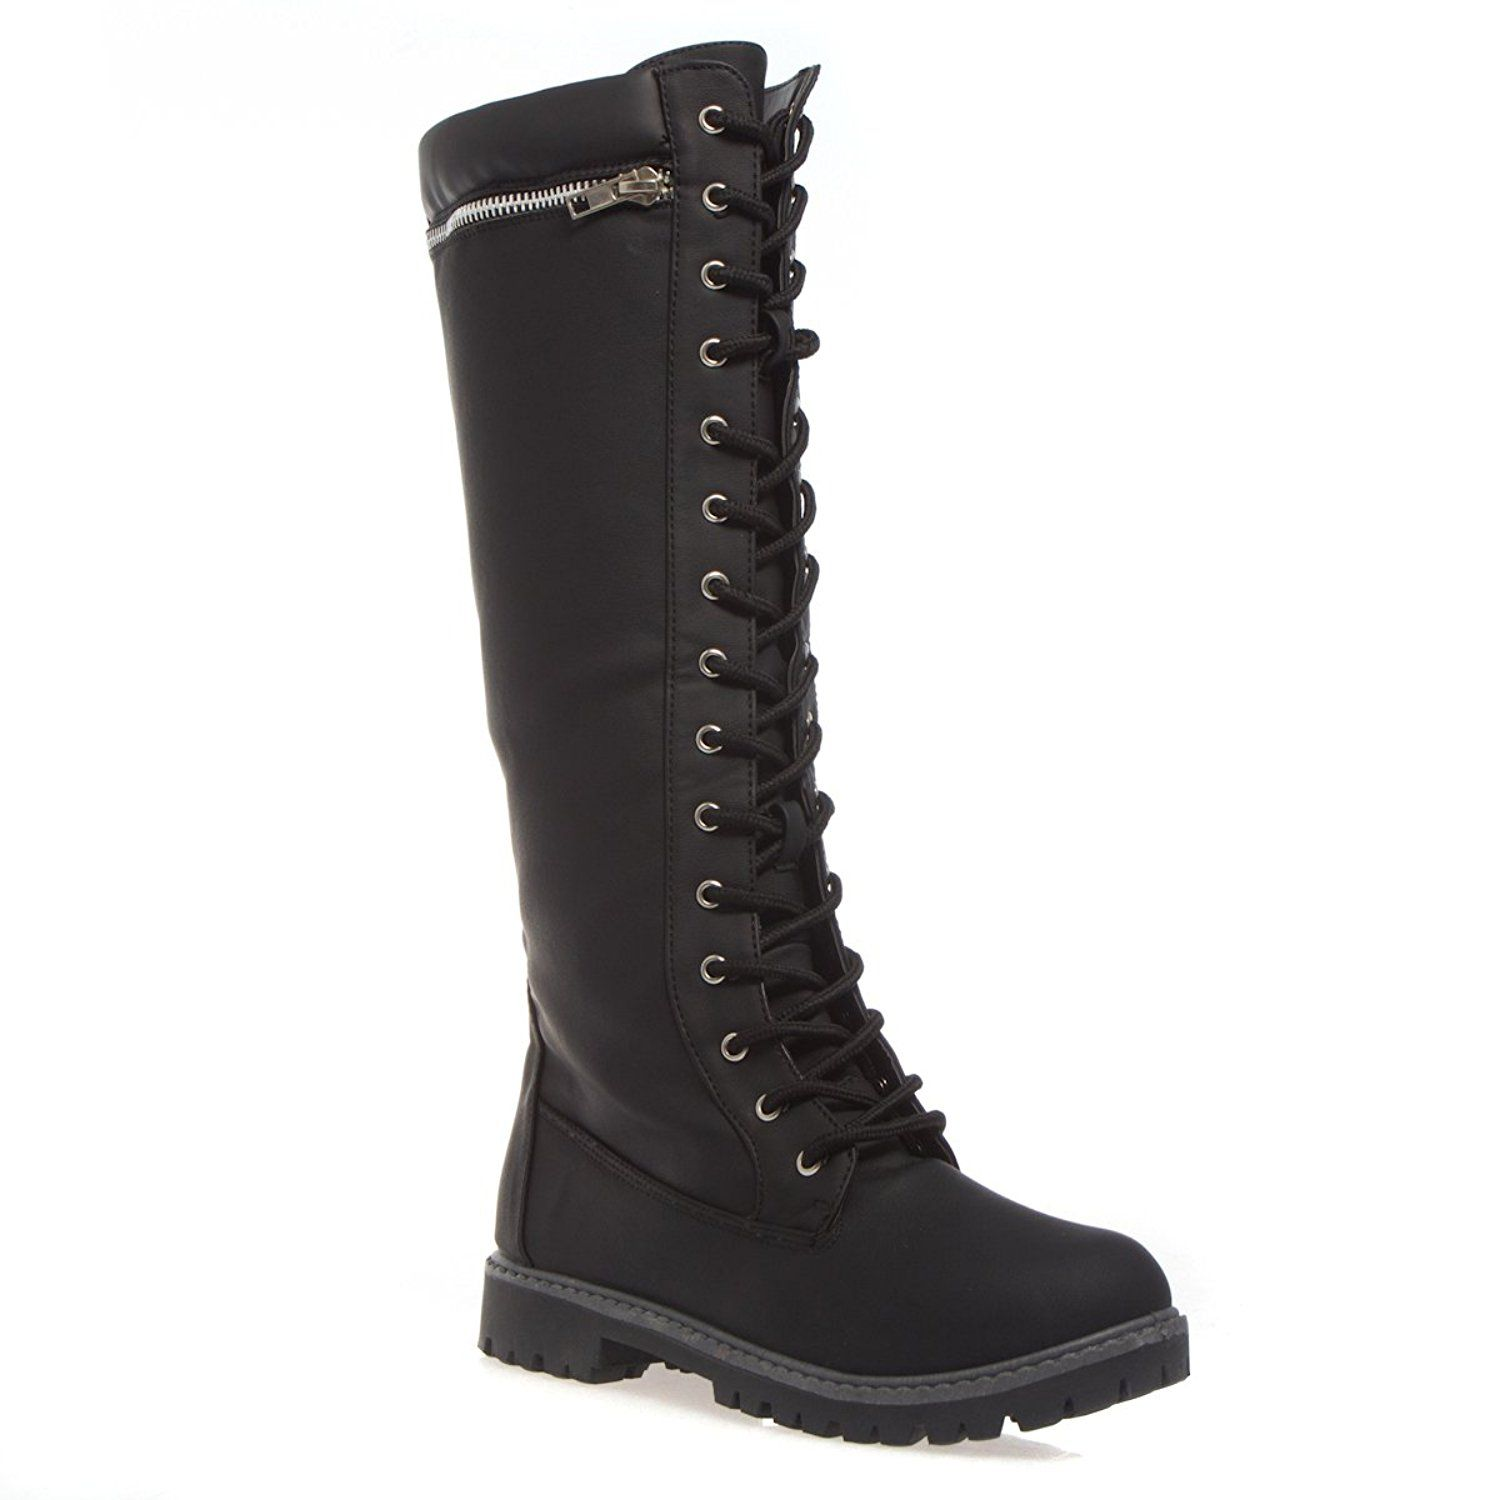 Pin on Women's Knee High Boots